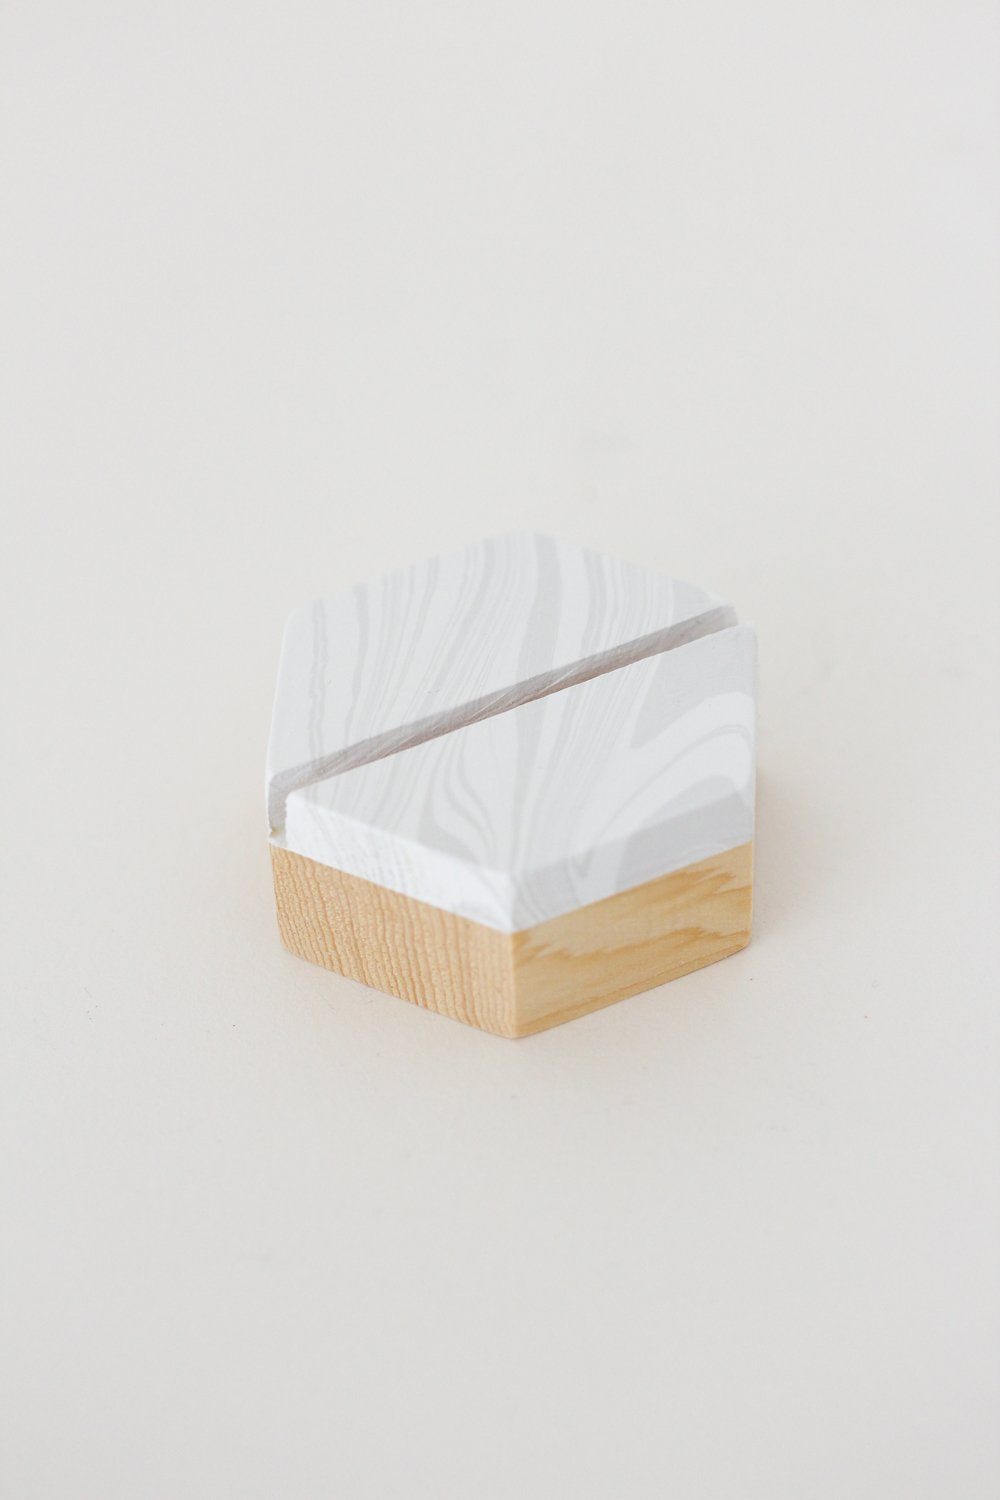 Marbleized Wooden Place Card Holders (Set of 6)